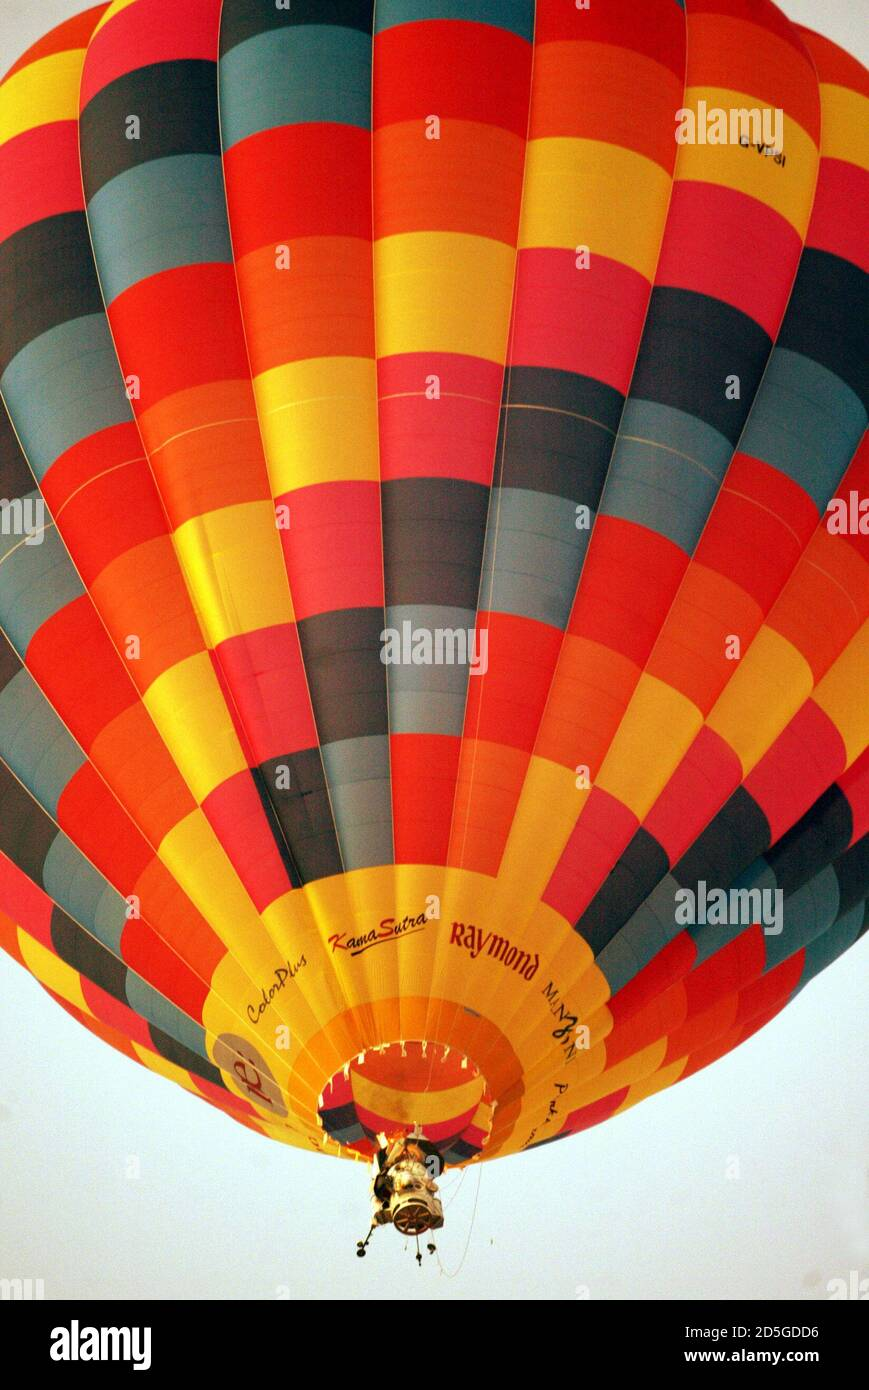 """Industrialist Vijaypat Singhania's hot air balloon takes off in Mumbai November 26, 2005. Singhania took off in his hot air balloon capsule in an effort to reach a height of 70,000 feet (above 21,336 meters) above sea level on Saturday, part of an attempt to break the existing world record set for """"High altitude in hot air balloon."""" The current record is held by Per Lindstrand, who reached a height of 64,997 feet (19,811 meters) in Plano, Texas, on June 6, 1988. REUTERS/Punit Paranjpe Stock Photo"""